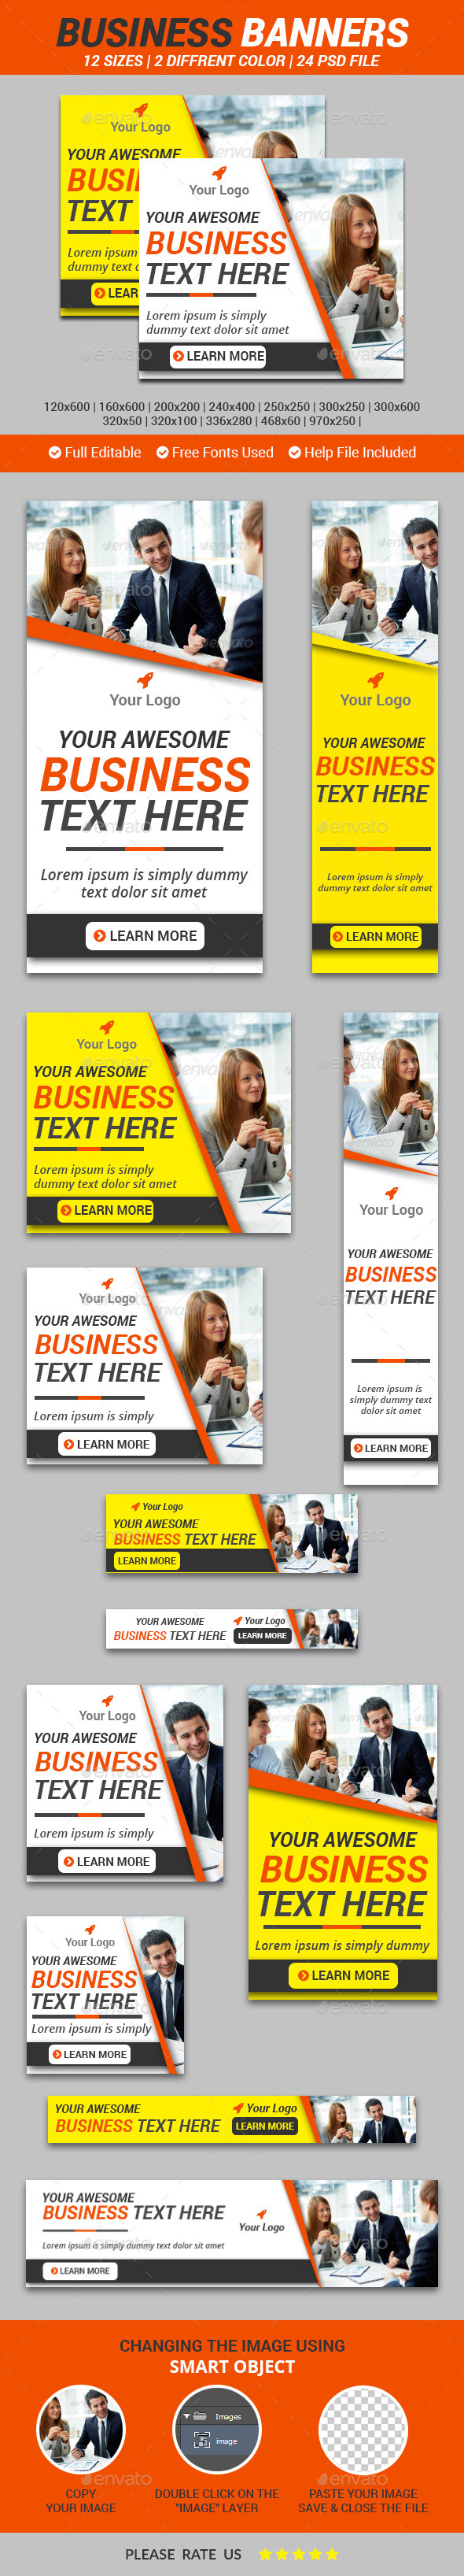 Business Banners v1 - Banners & Ads Web Elements